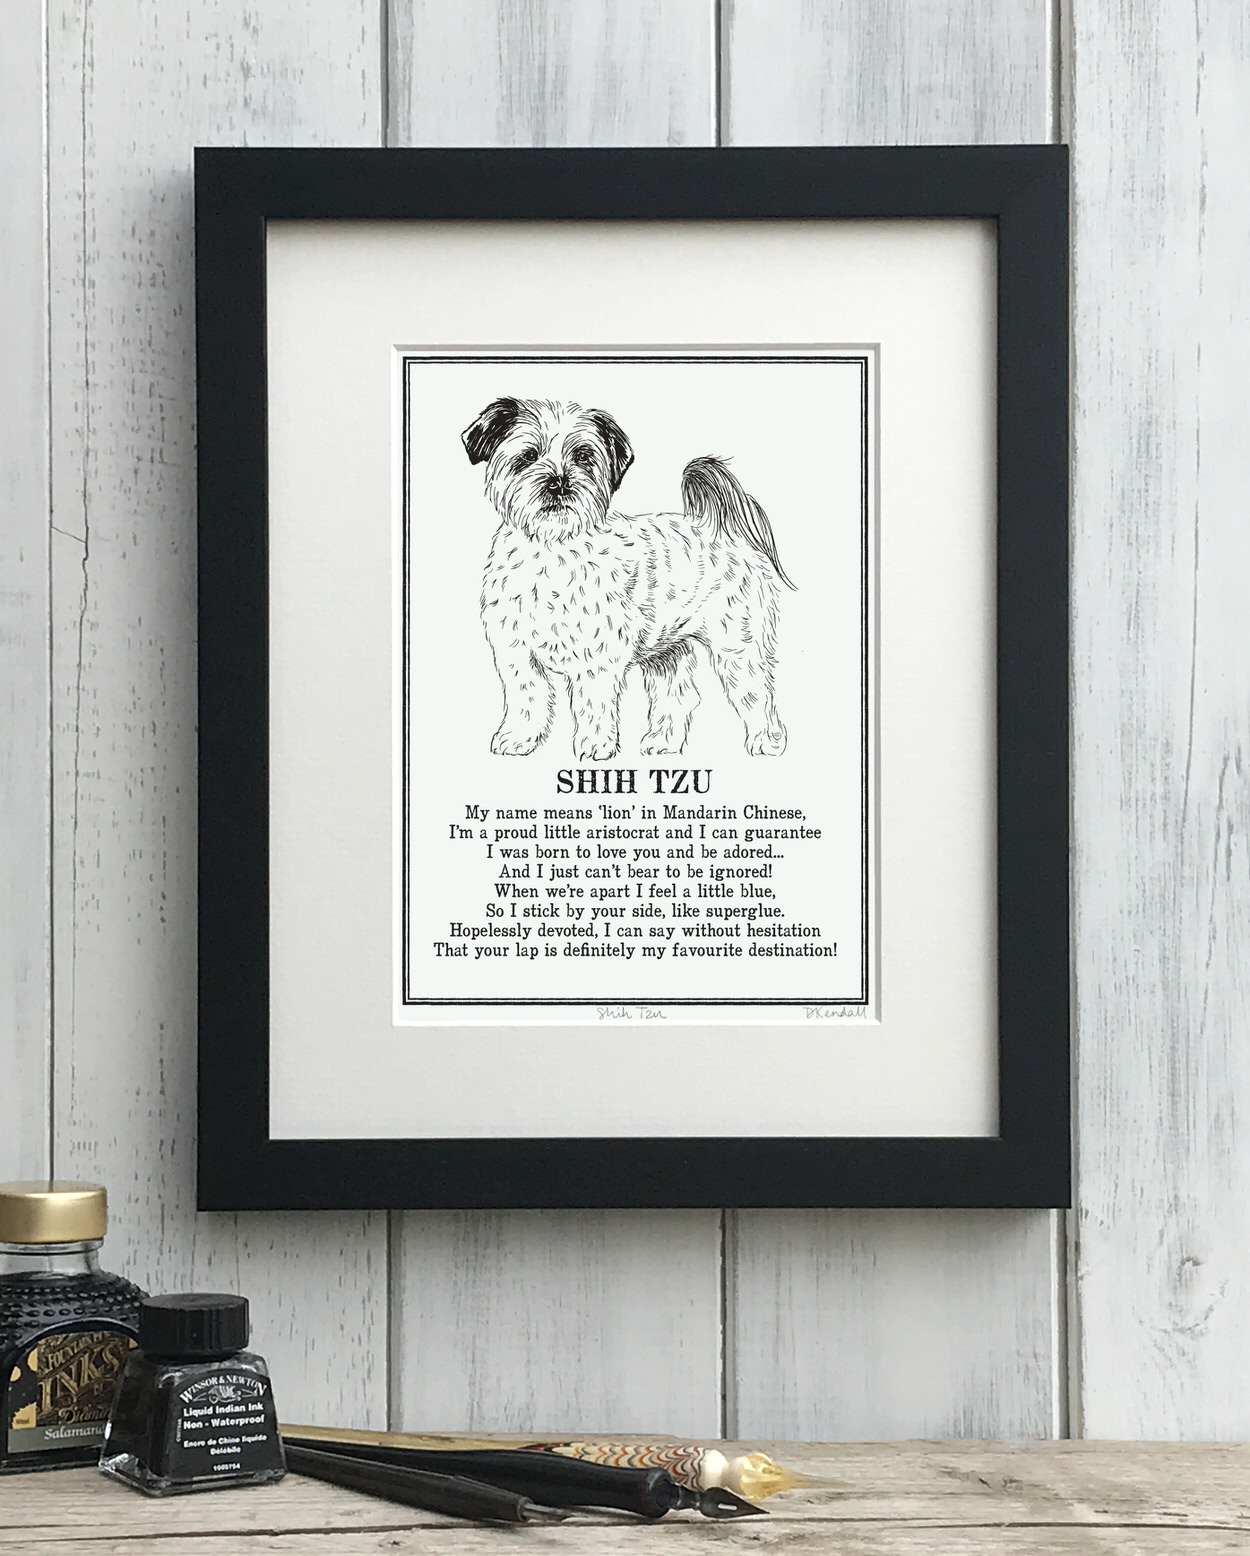 Shih Tzu print illustrated poem by The Enlightened Hound